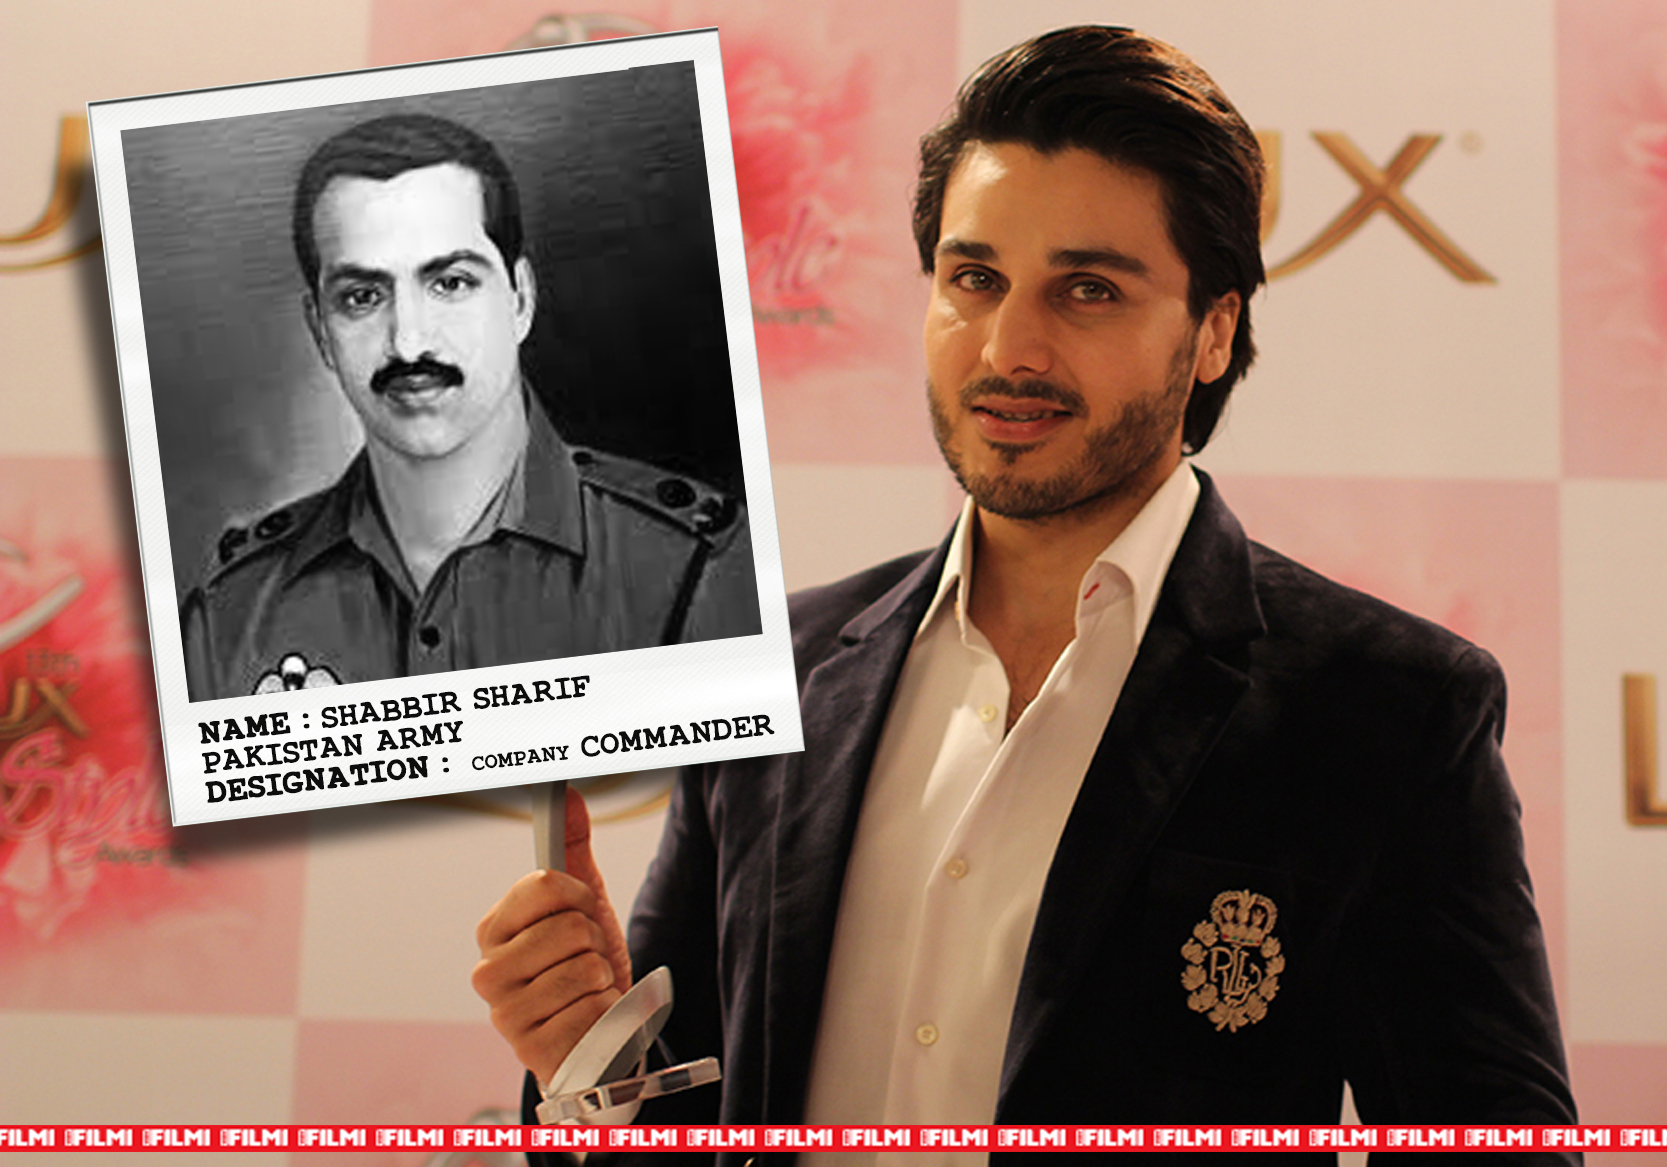 ahsan khan as SHABBIR SHARIF